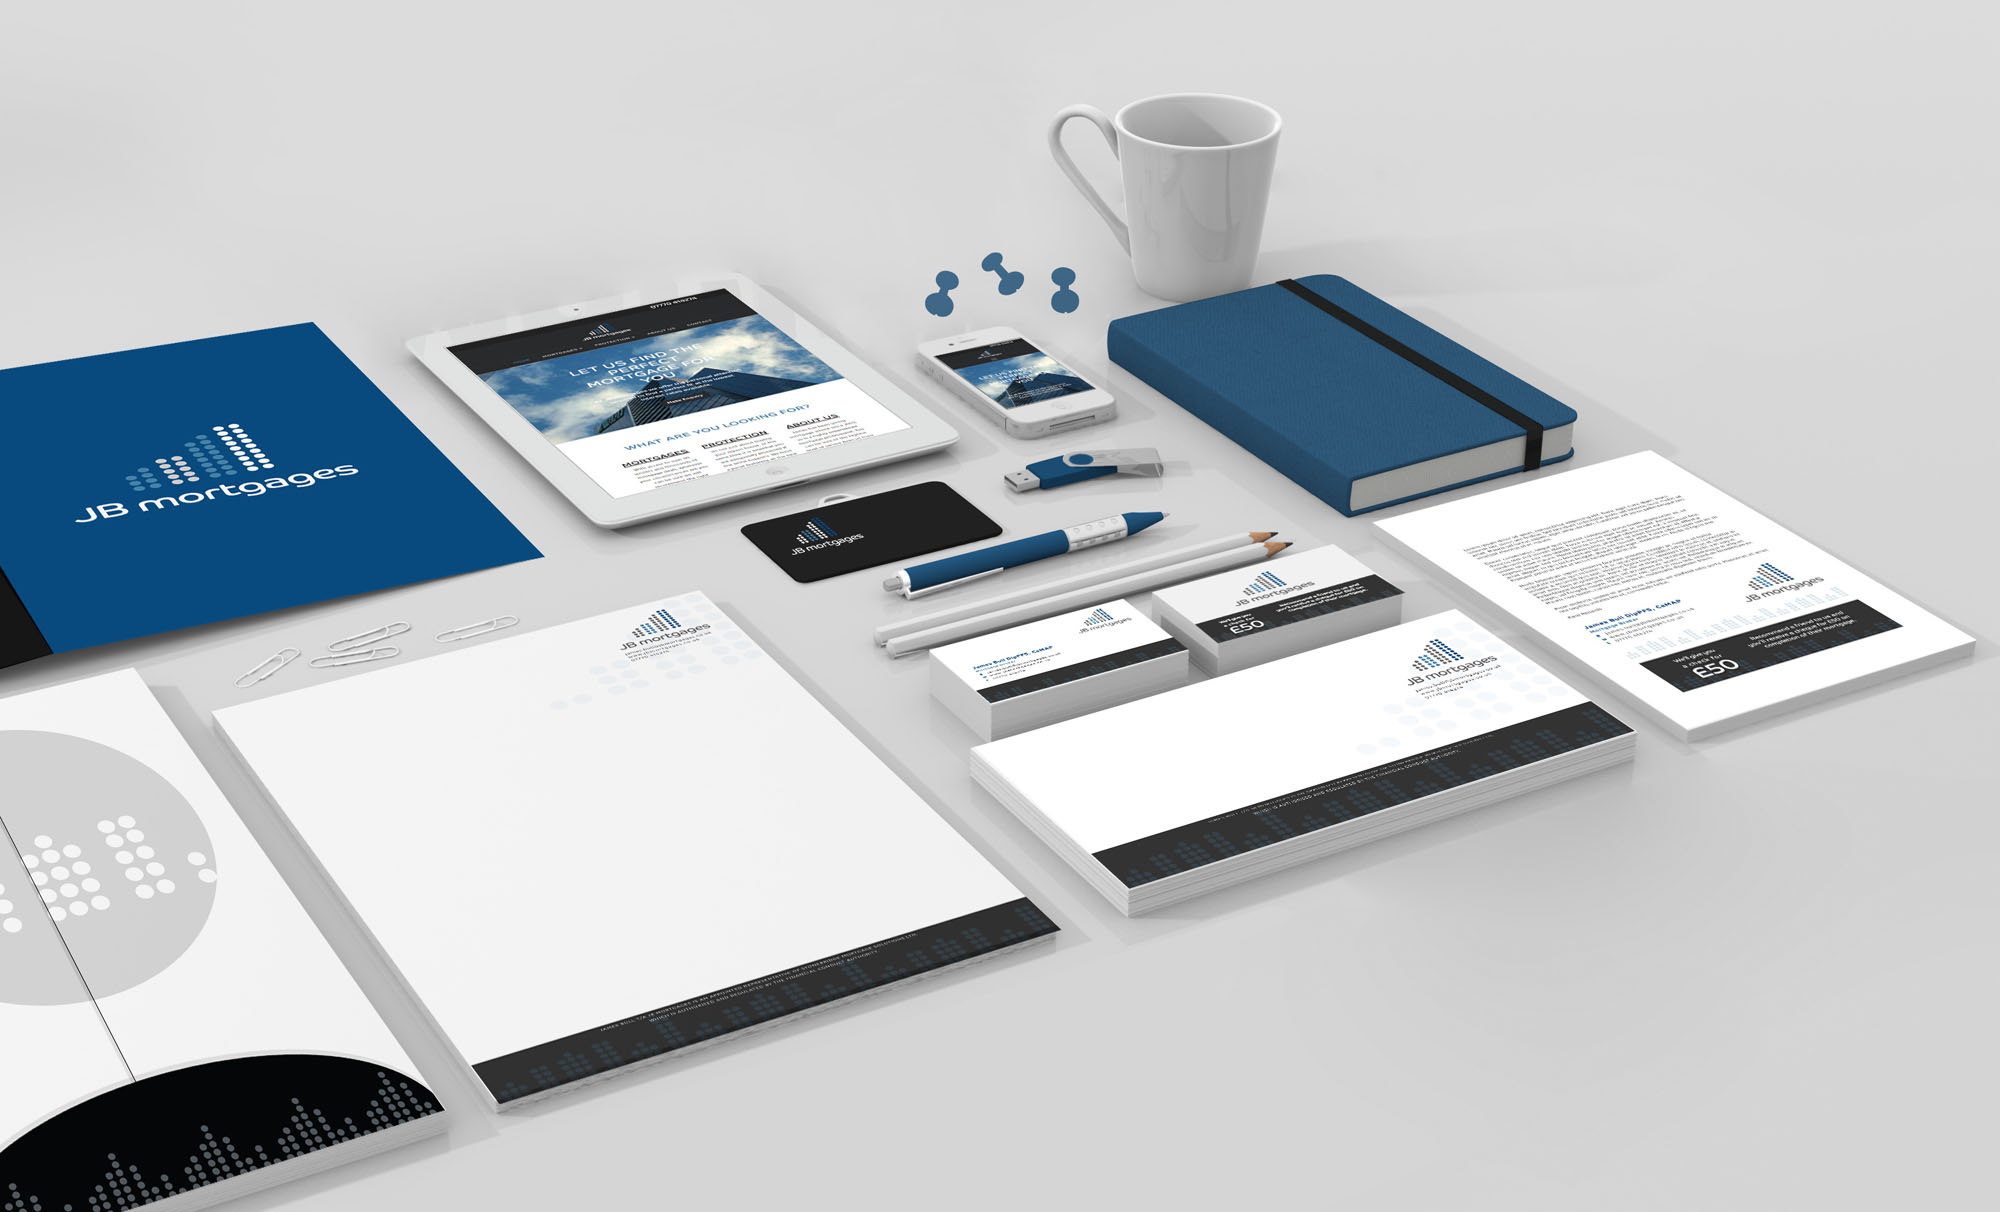 JB Mortgages Branding and Identity Design Project